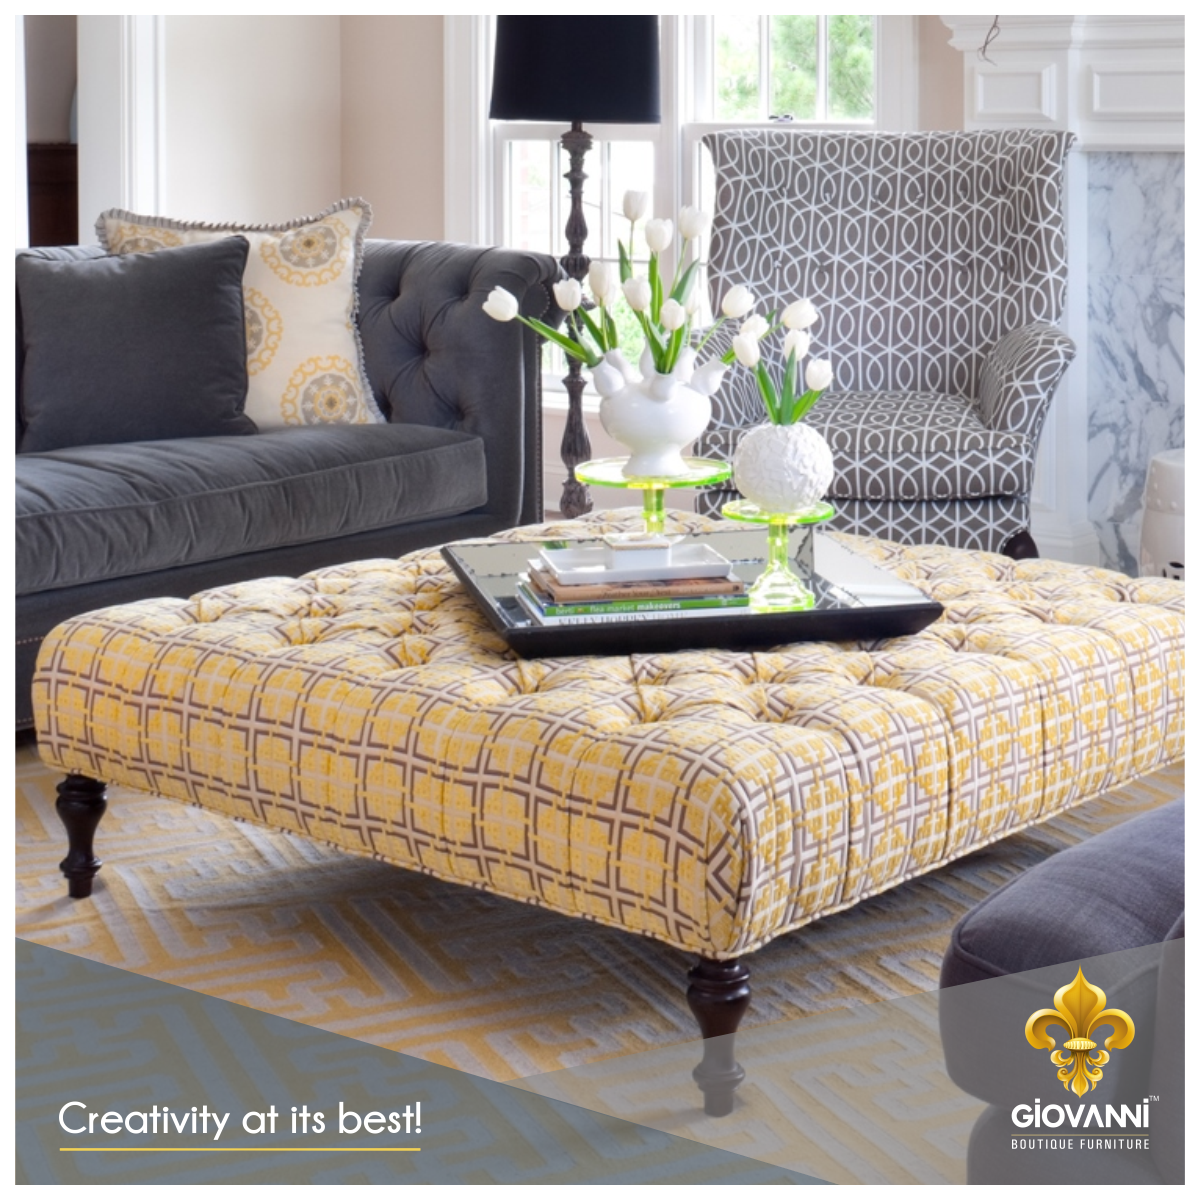 Featuring check patterned design and fine detailing of button tufting, this coffee table can be an elegant addition to your home decor. Visit www.giovanniboutique.com and get custom crafted furniture at your doorstep! #BoutiqueFurniture #CustomCrafted #HomeDecor #Furniture #ModernHome #CoffeeTable